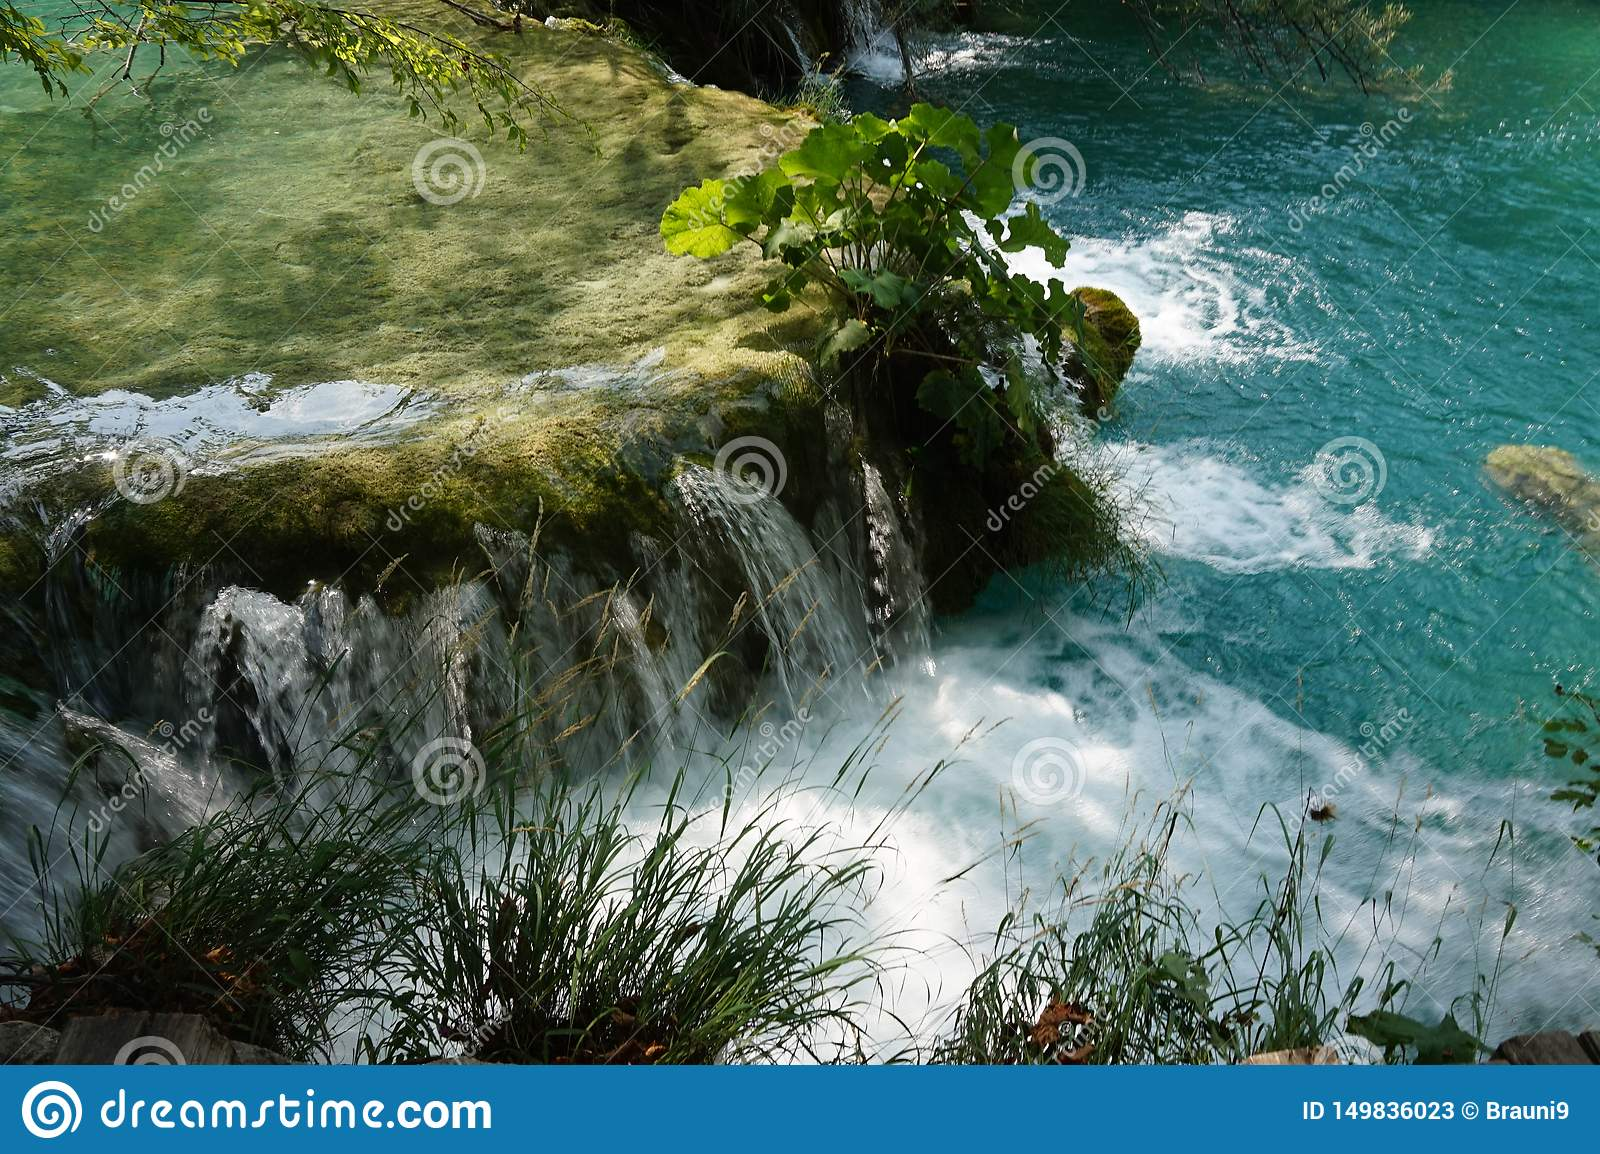 National Park Plitvice Lakes Croatia - A little Waterfall and a plant in it